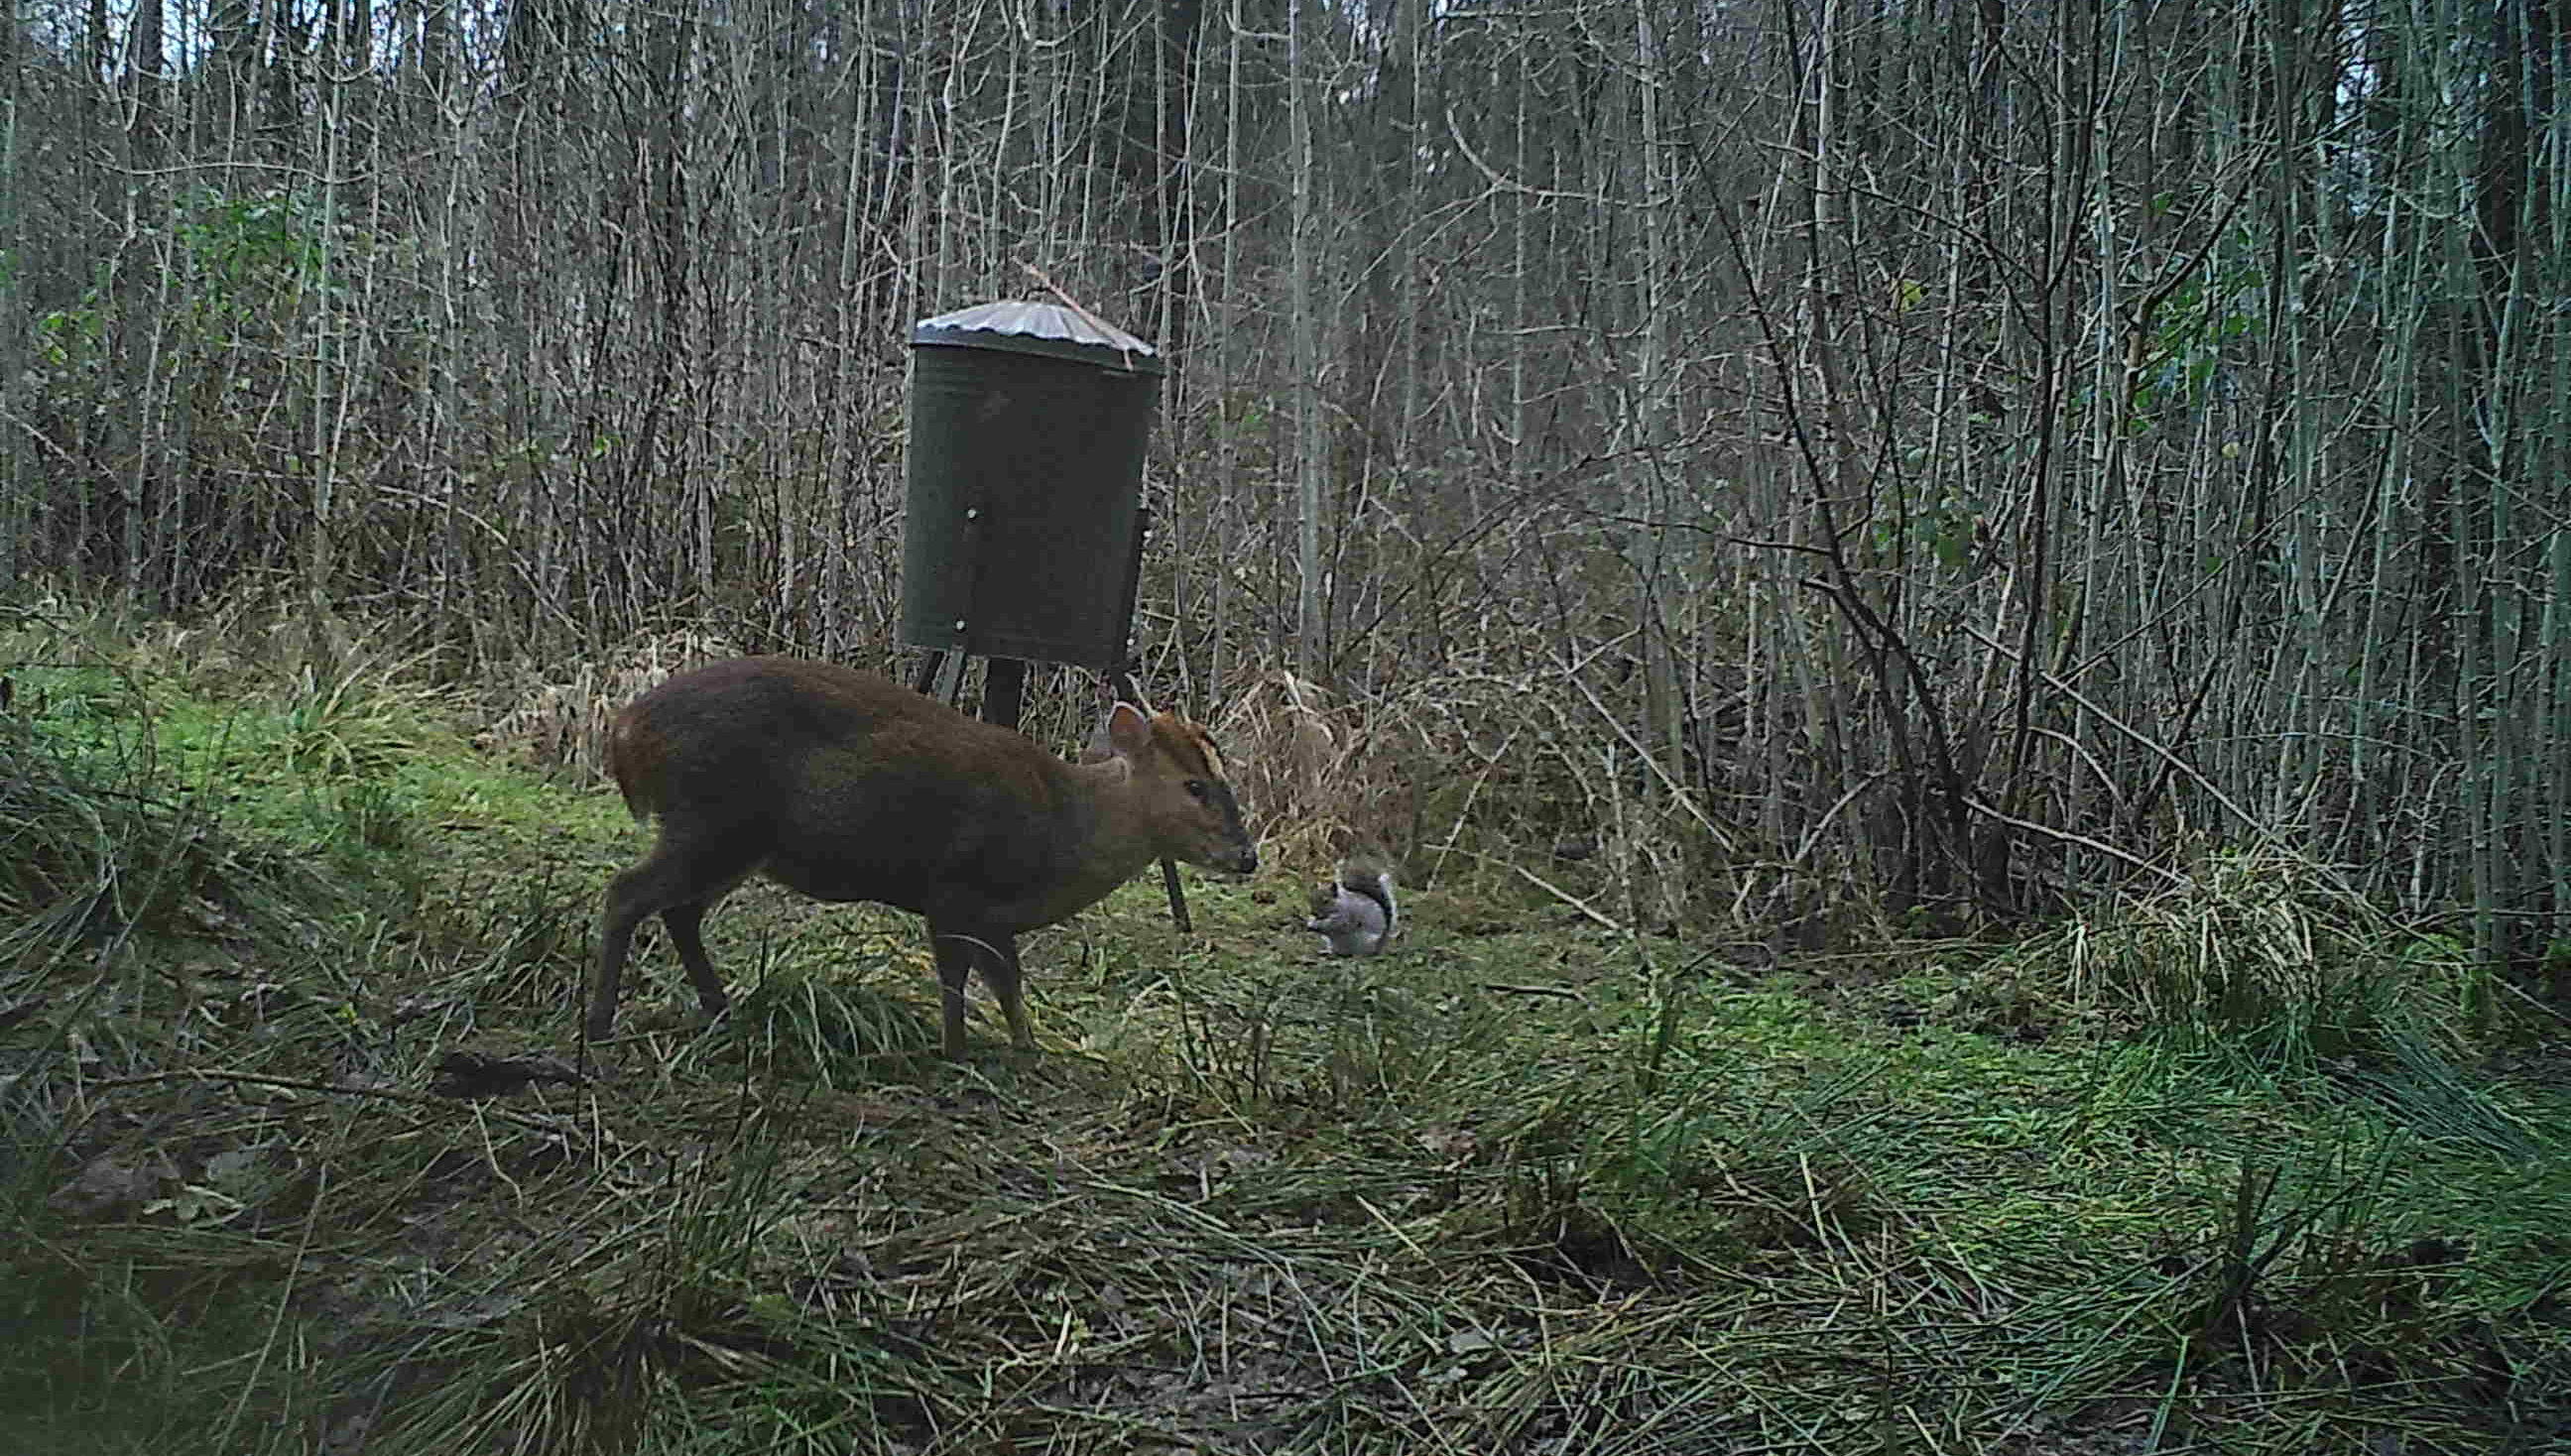 Deer Image From Trail Cam.